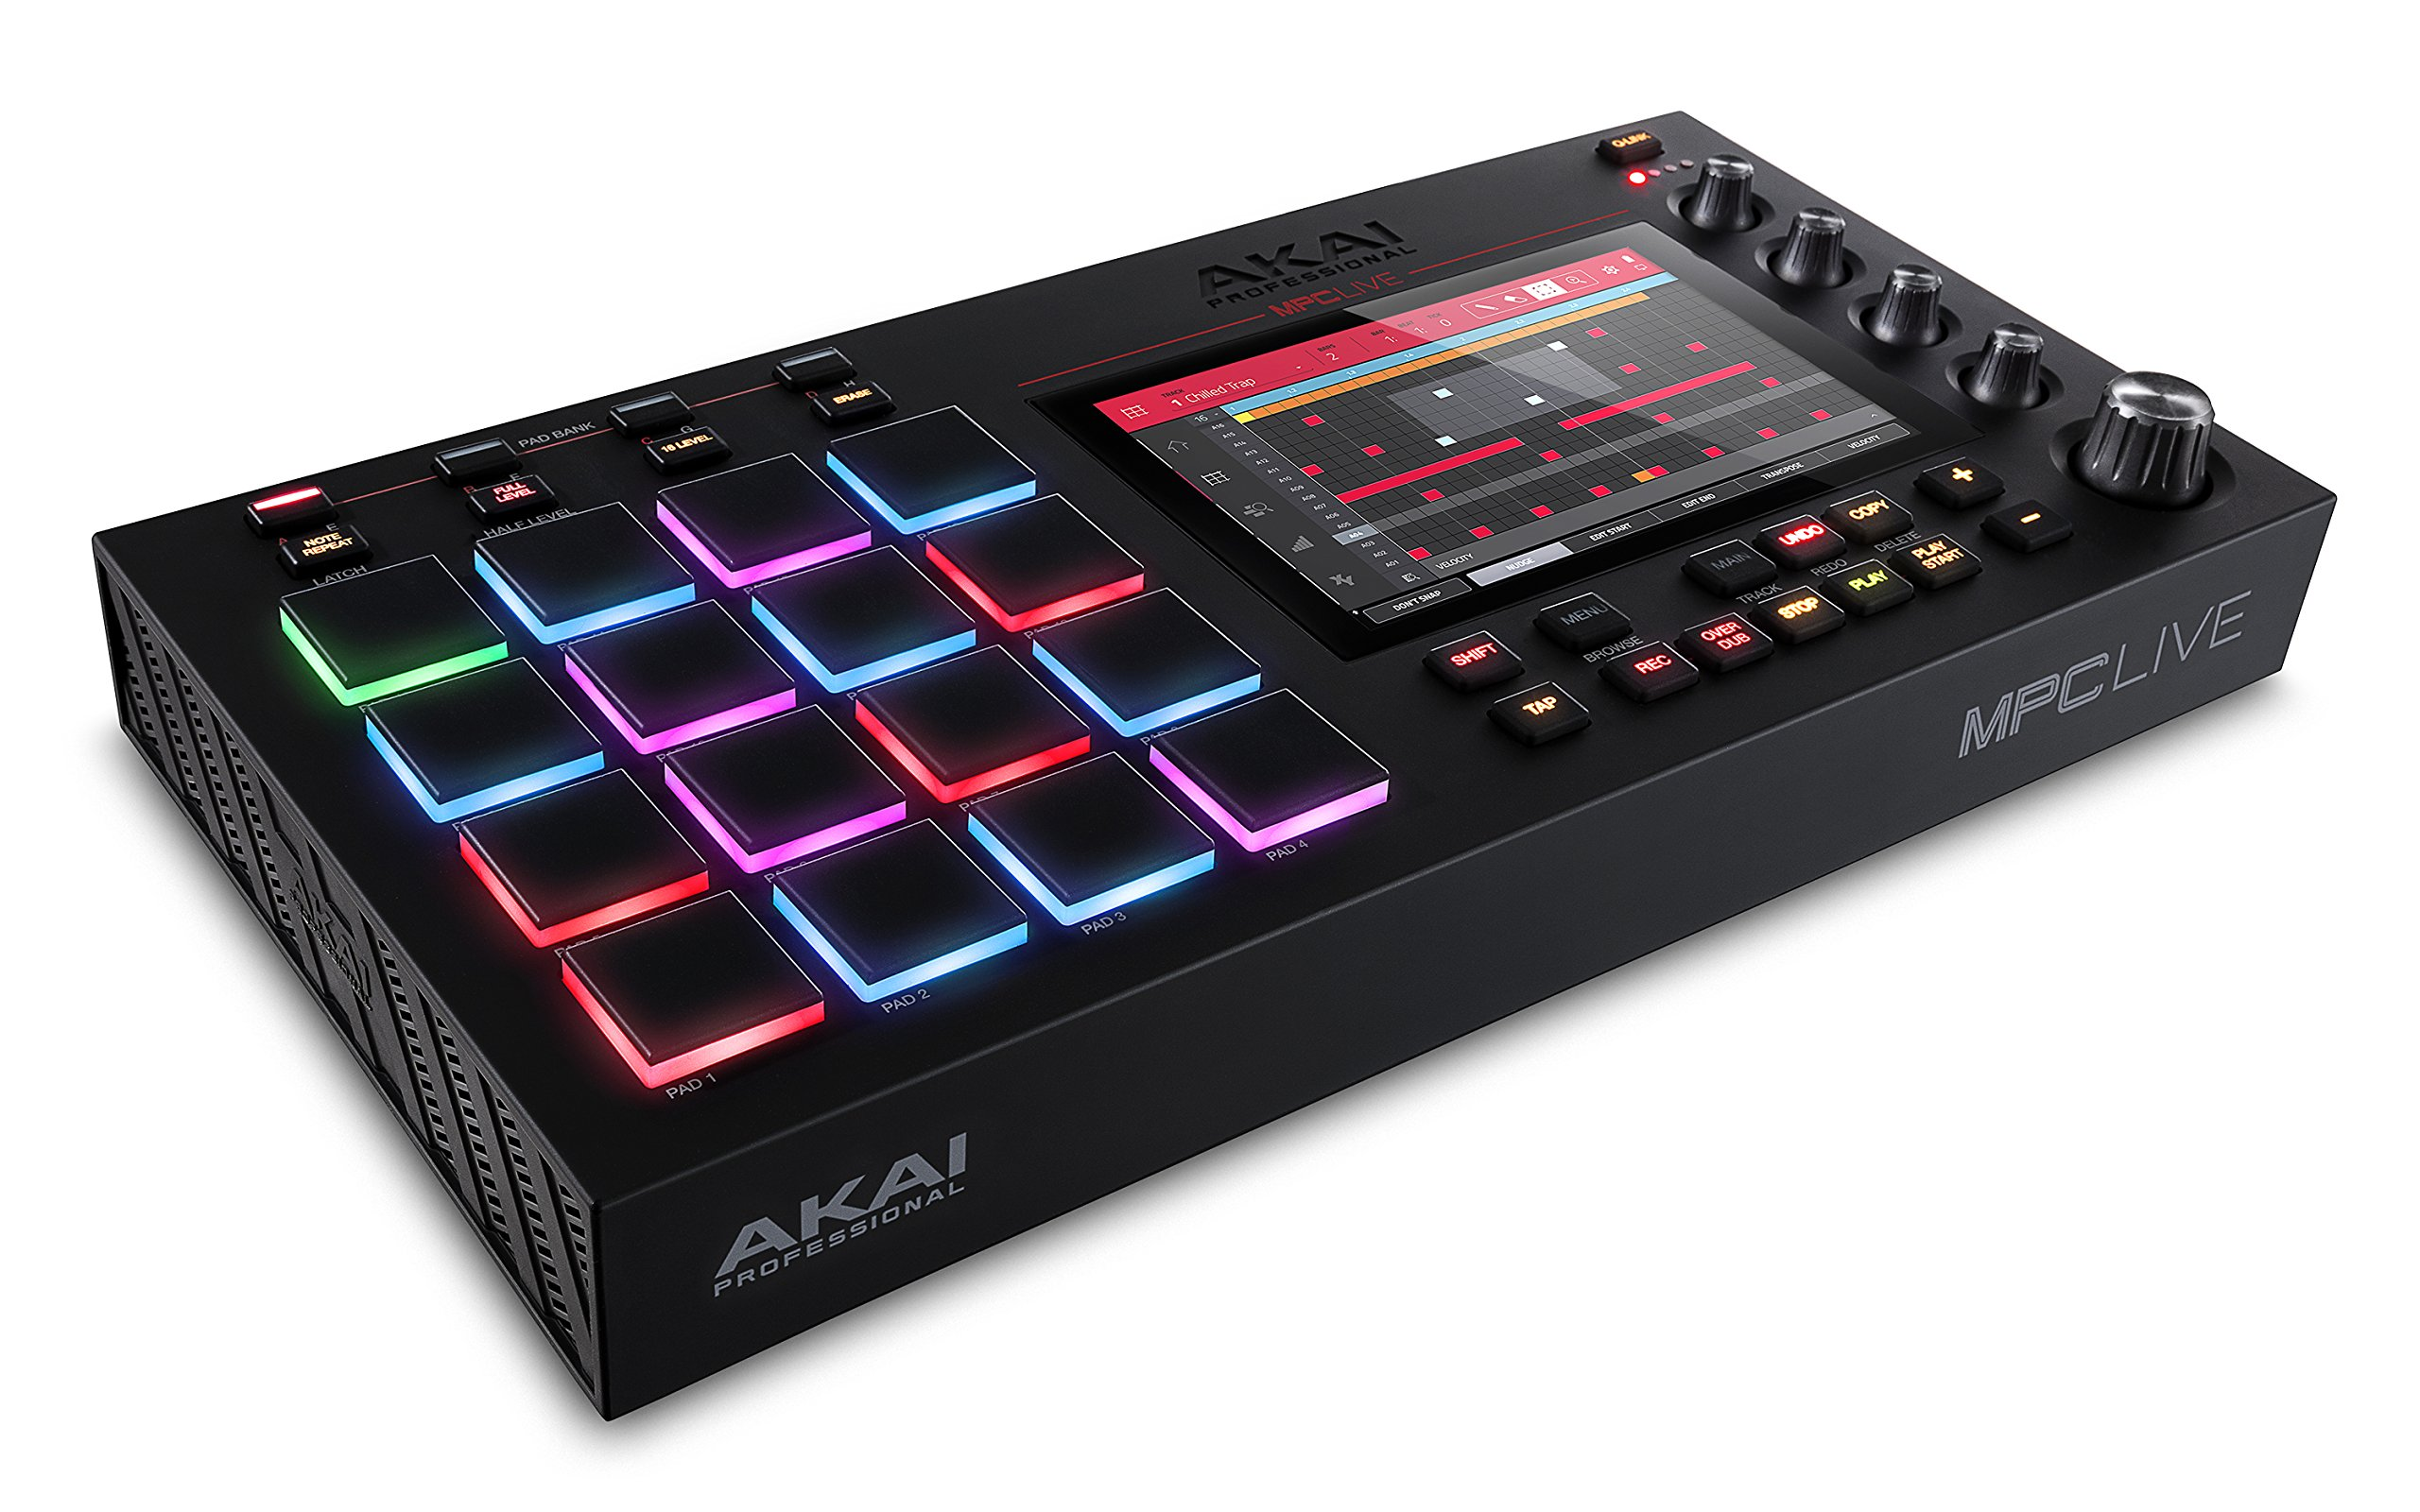 Akai Professional MPC Live | Ultra-Portable Fully Standalone MPC With 7-Inch Multi-Touch Display, 16GB On-Board Storage, Rechargeable Battery, Full Control Arsenal and 10GB Sound Library Included by Akai Professional